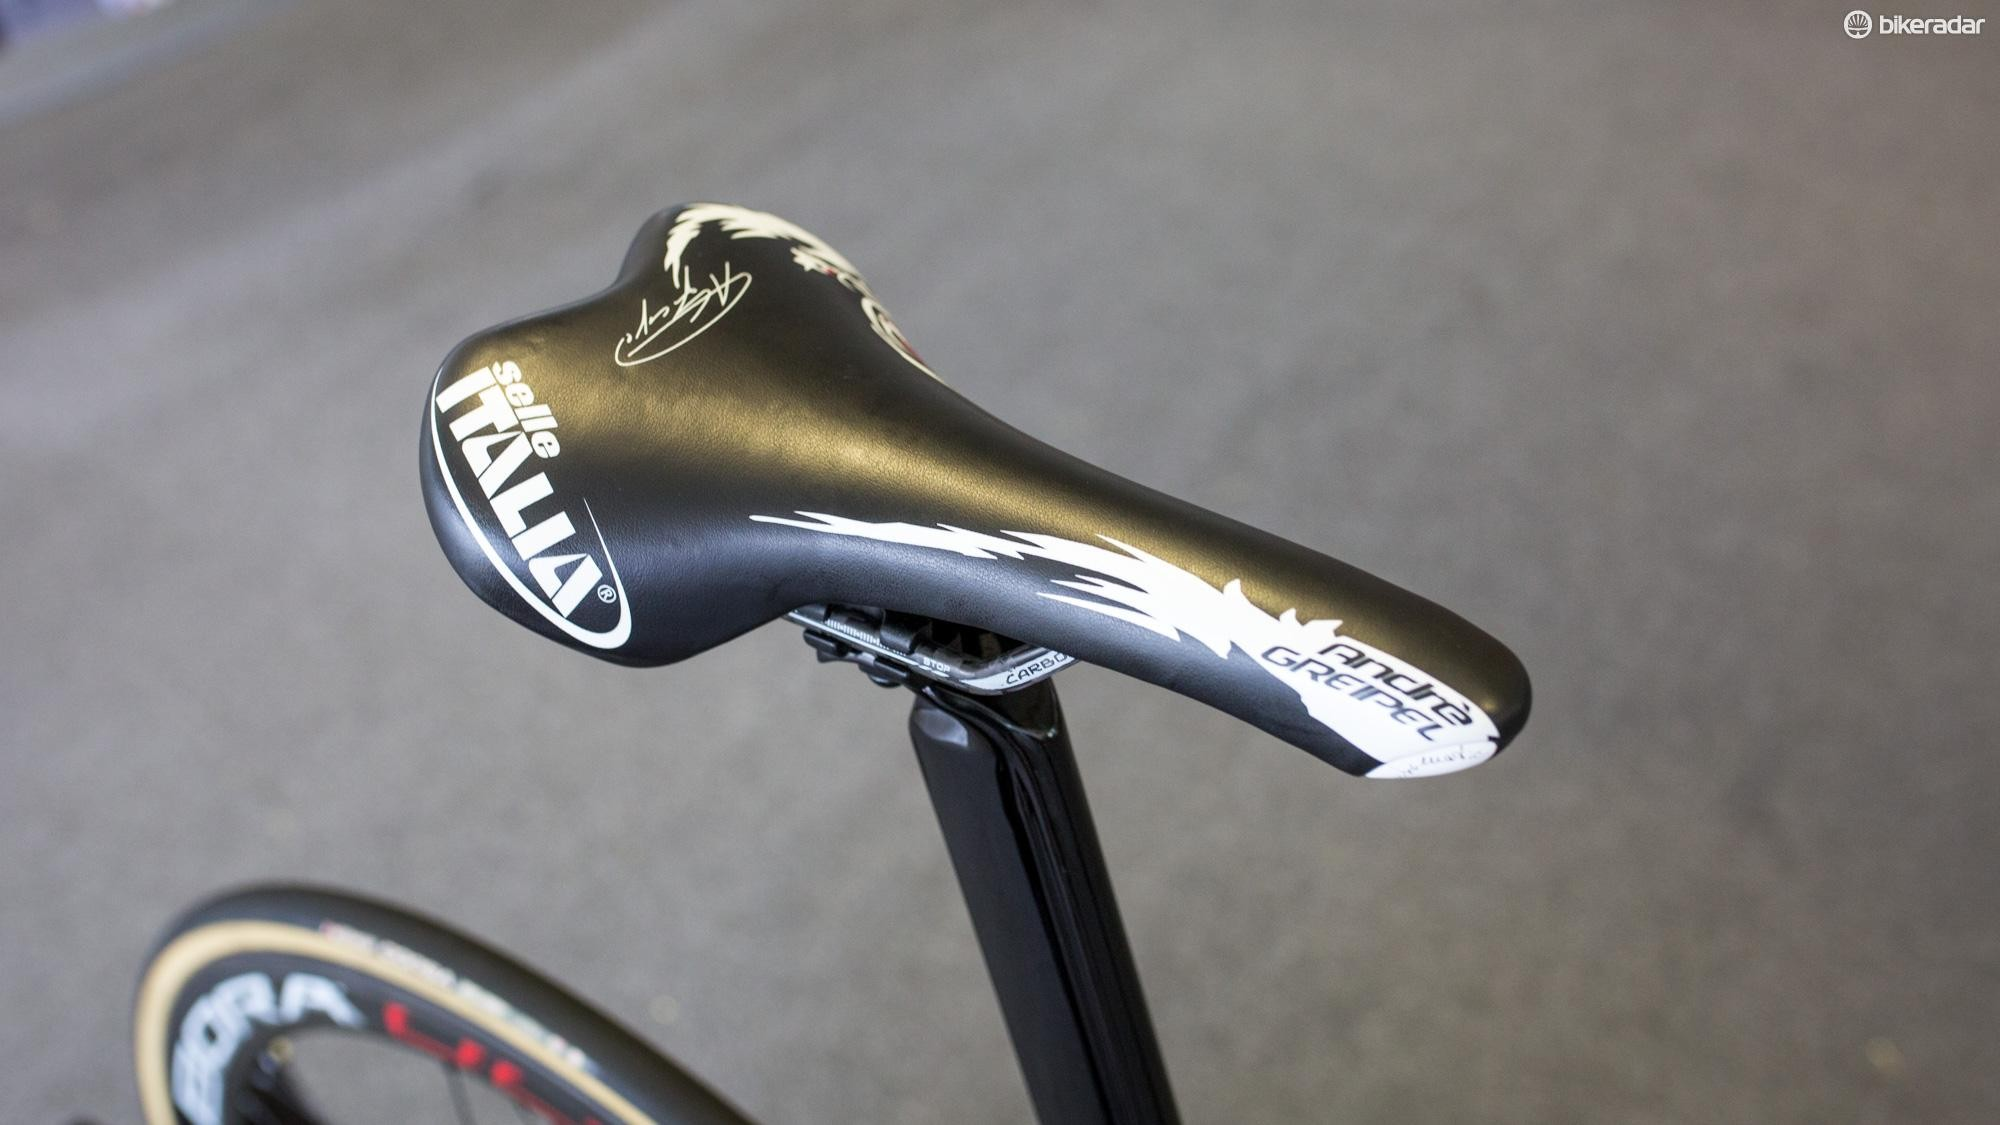 Greipel's Turbomatic saddle is decidedly old-school